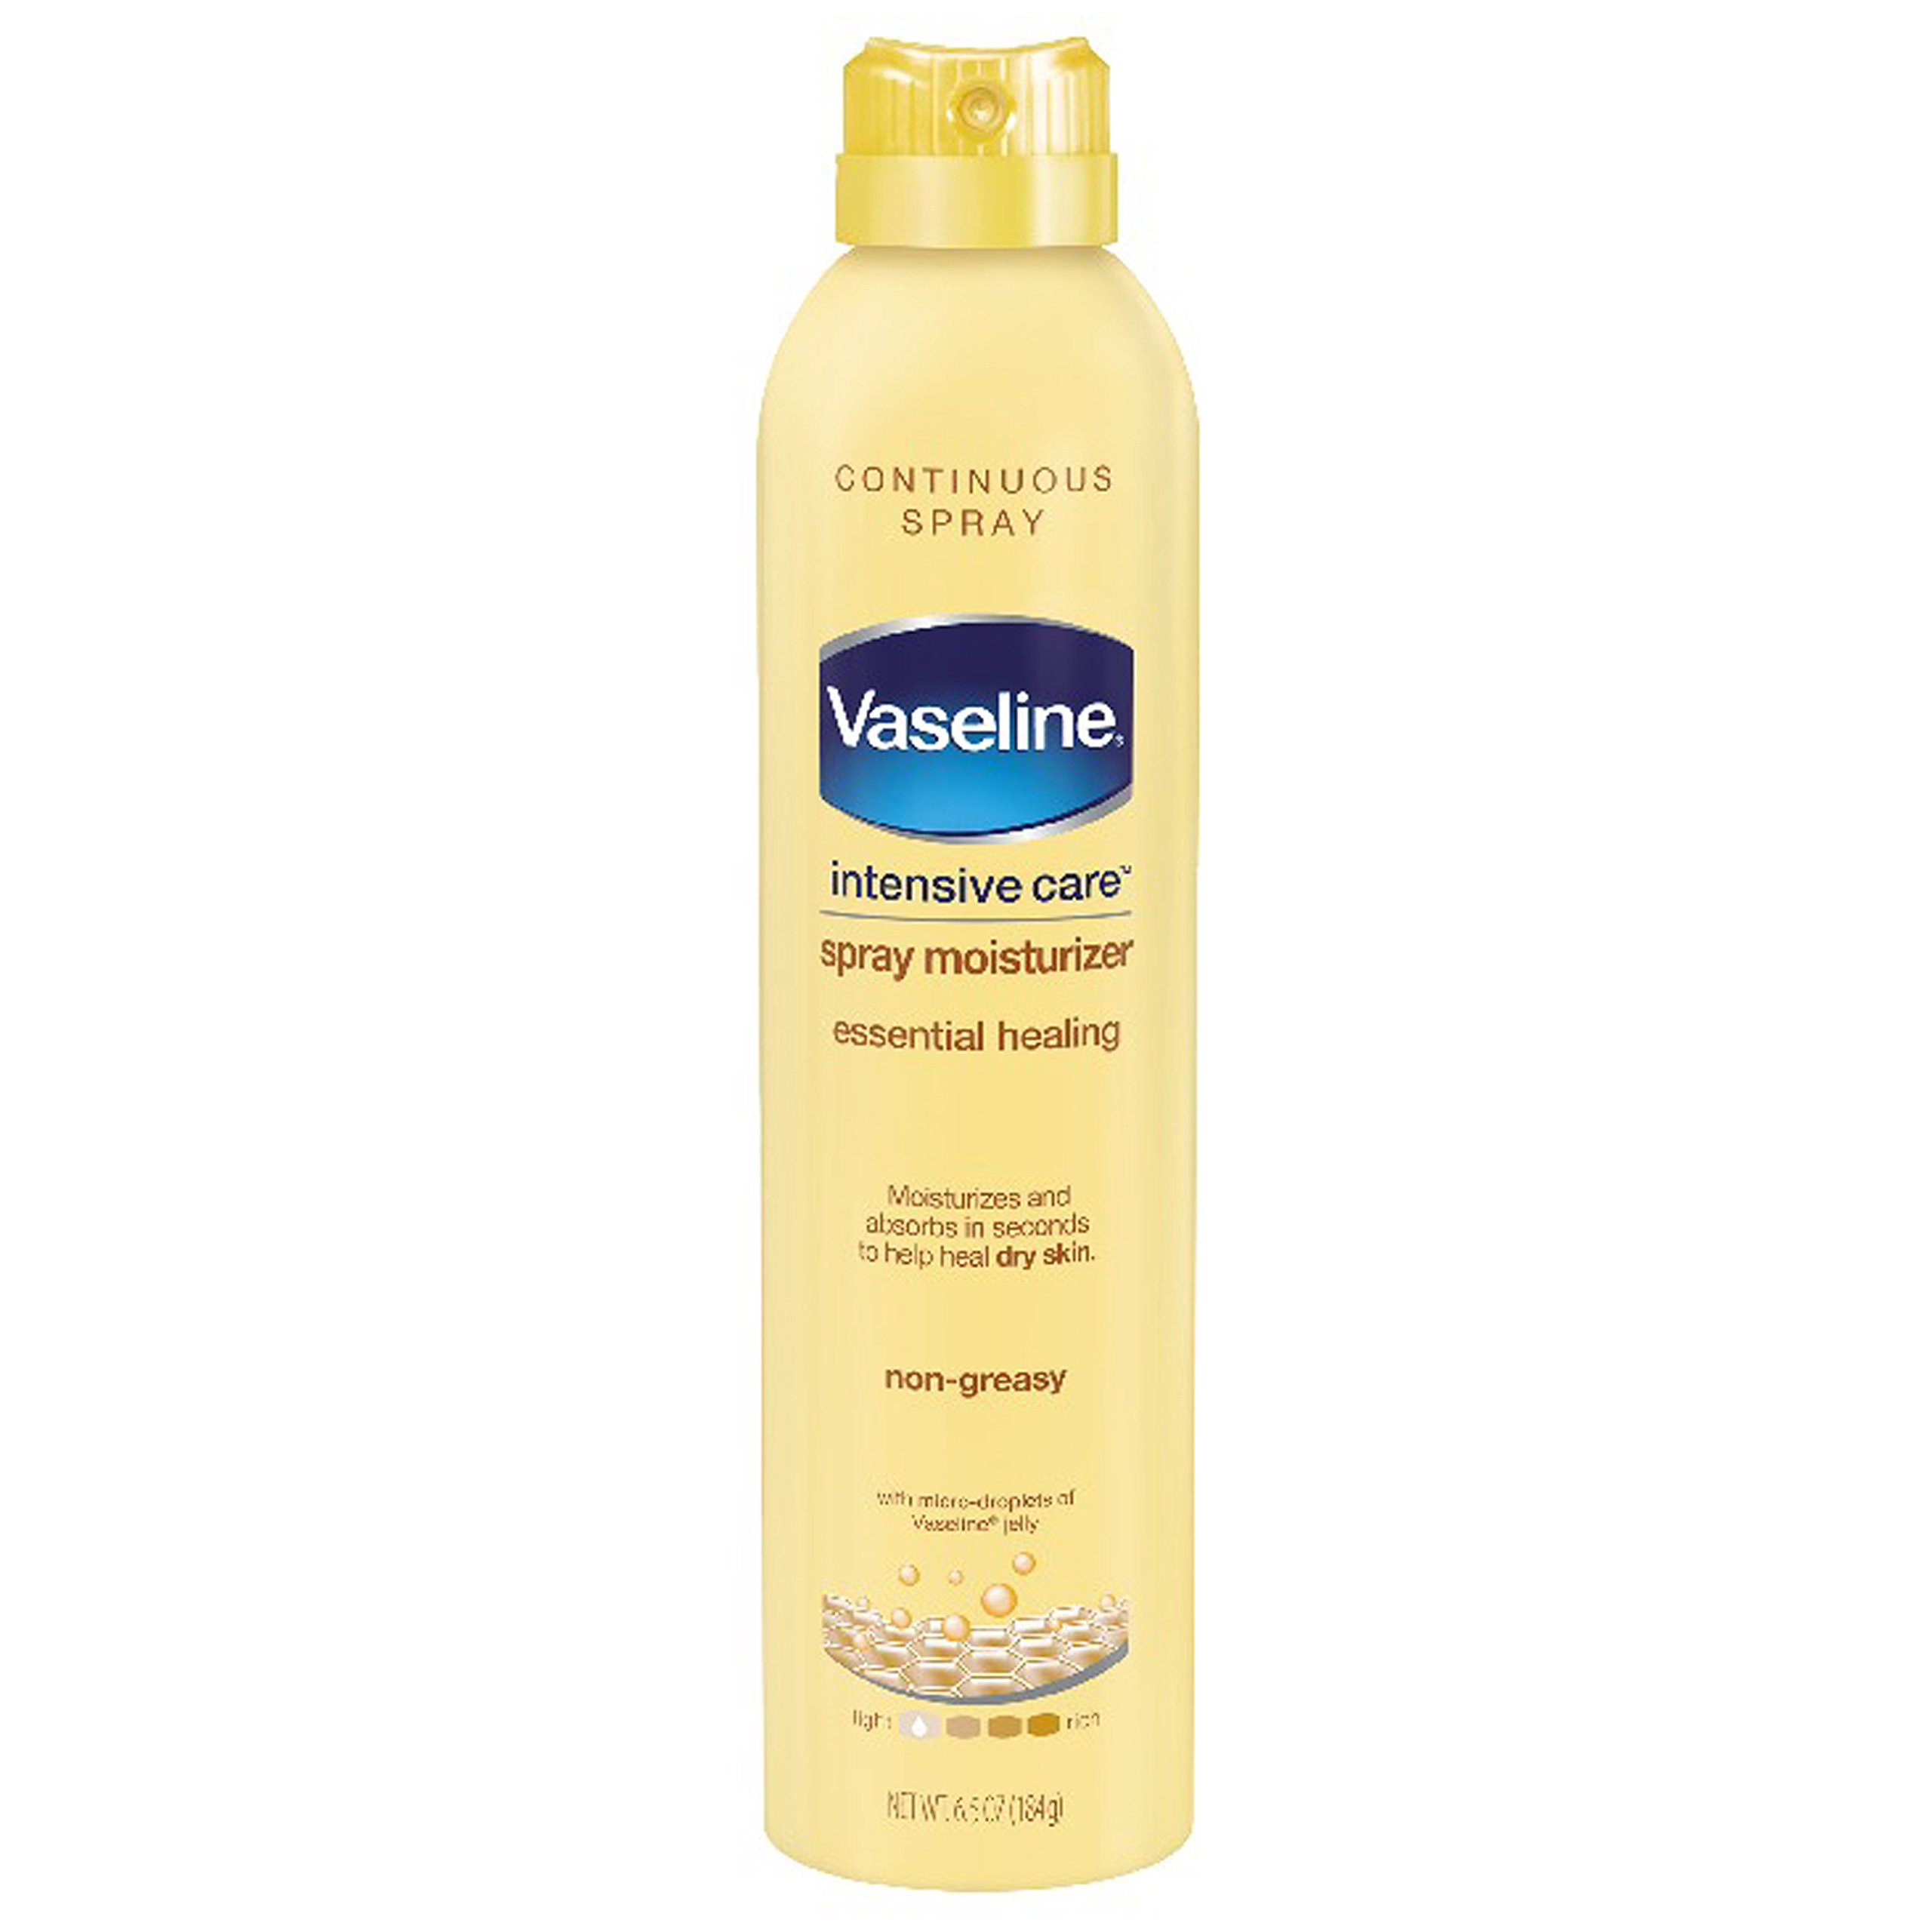 Vaseline Intensive Care Spray Lotion, Essential Healing, 6.5 oz by VASELINE HBL